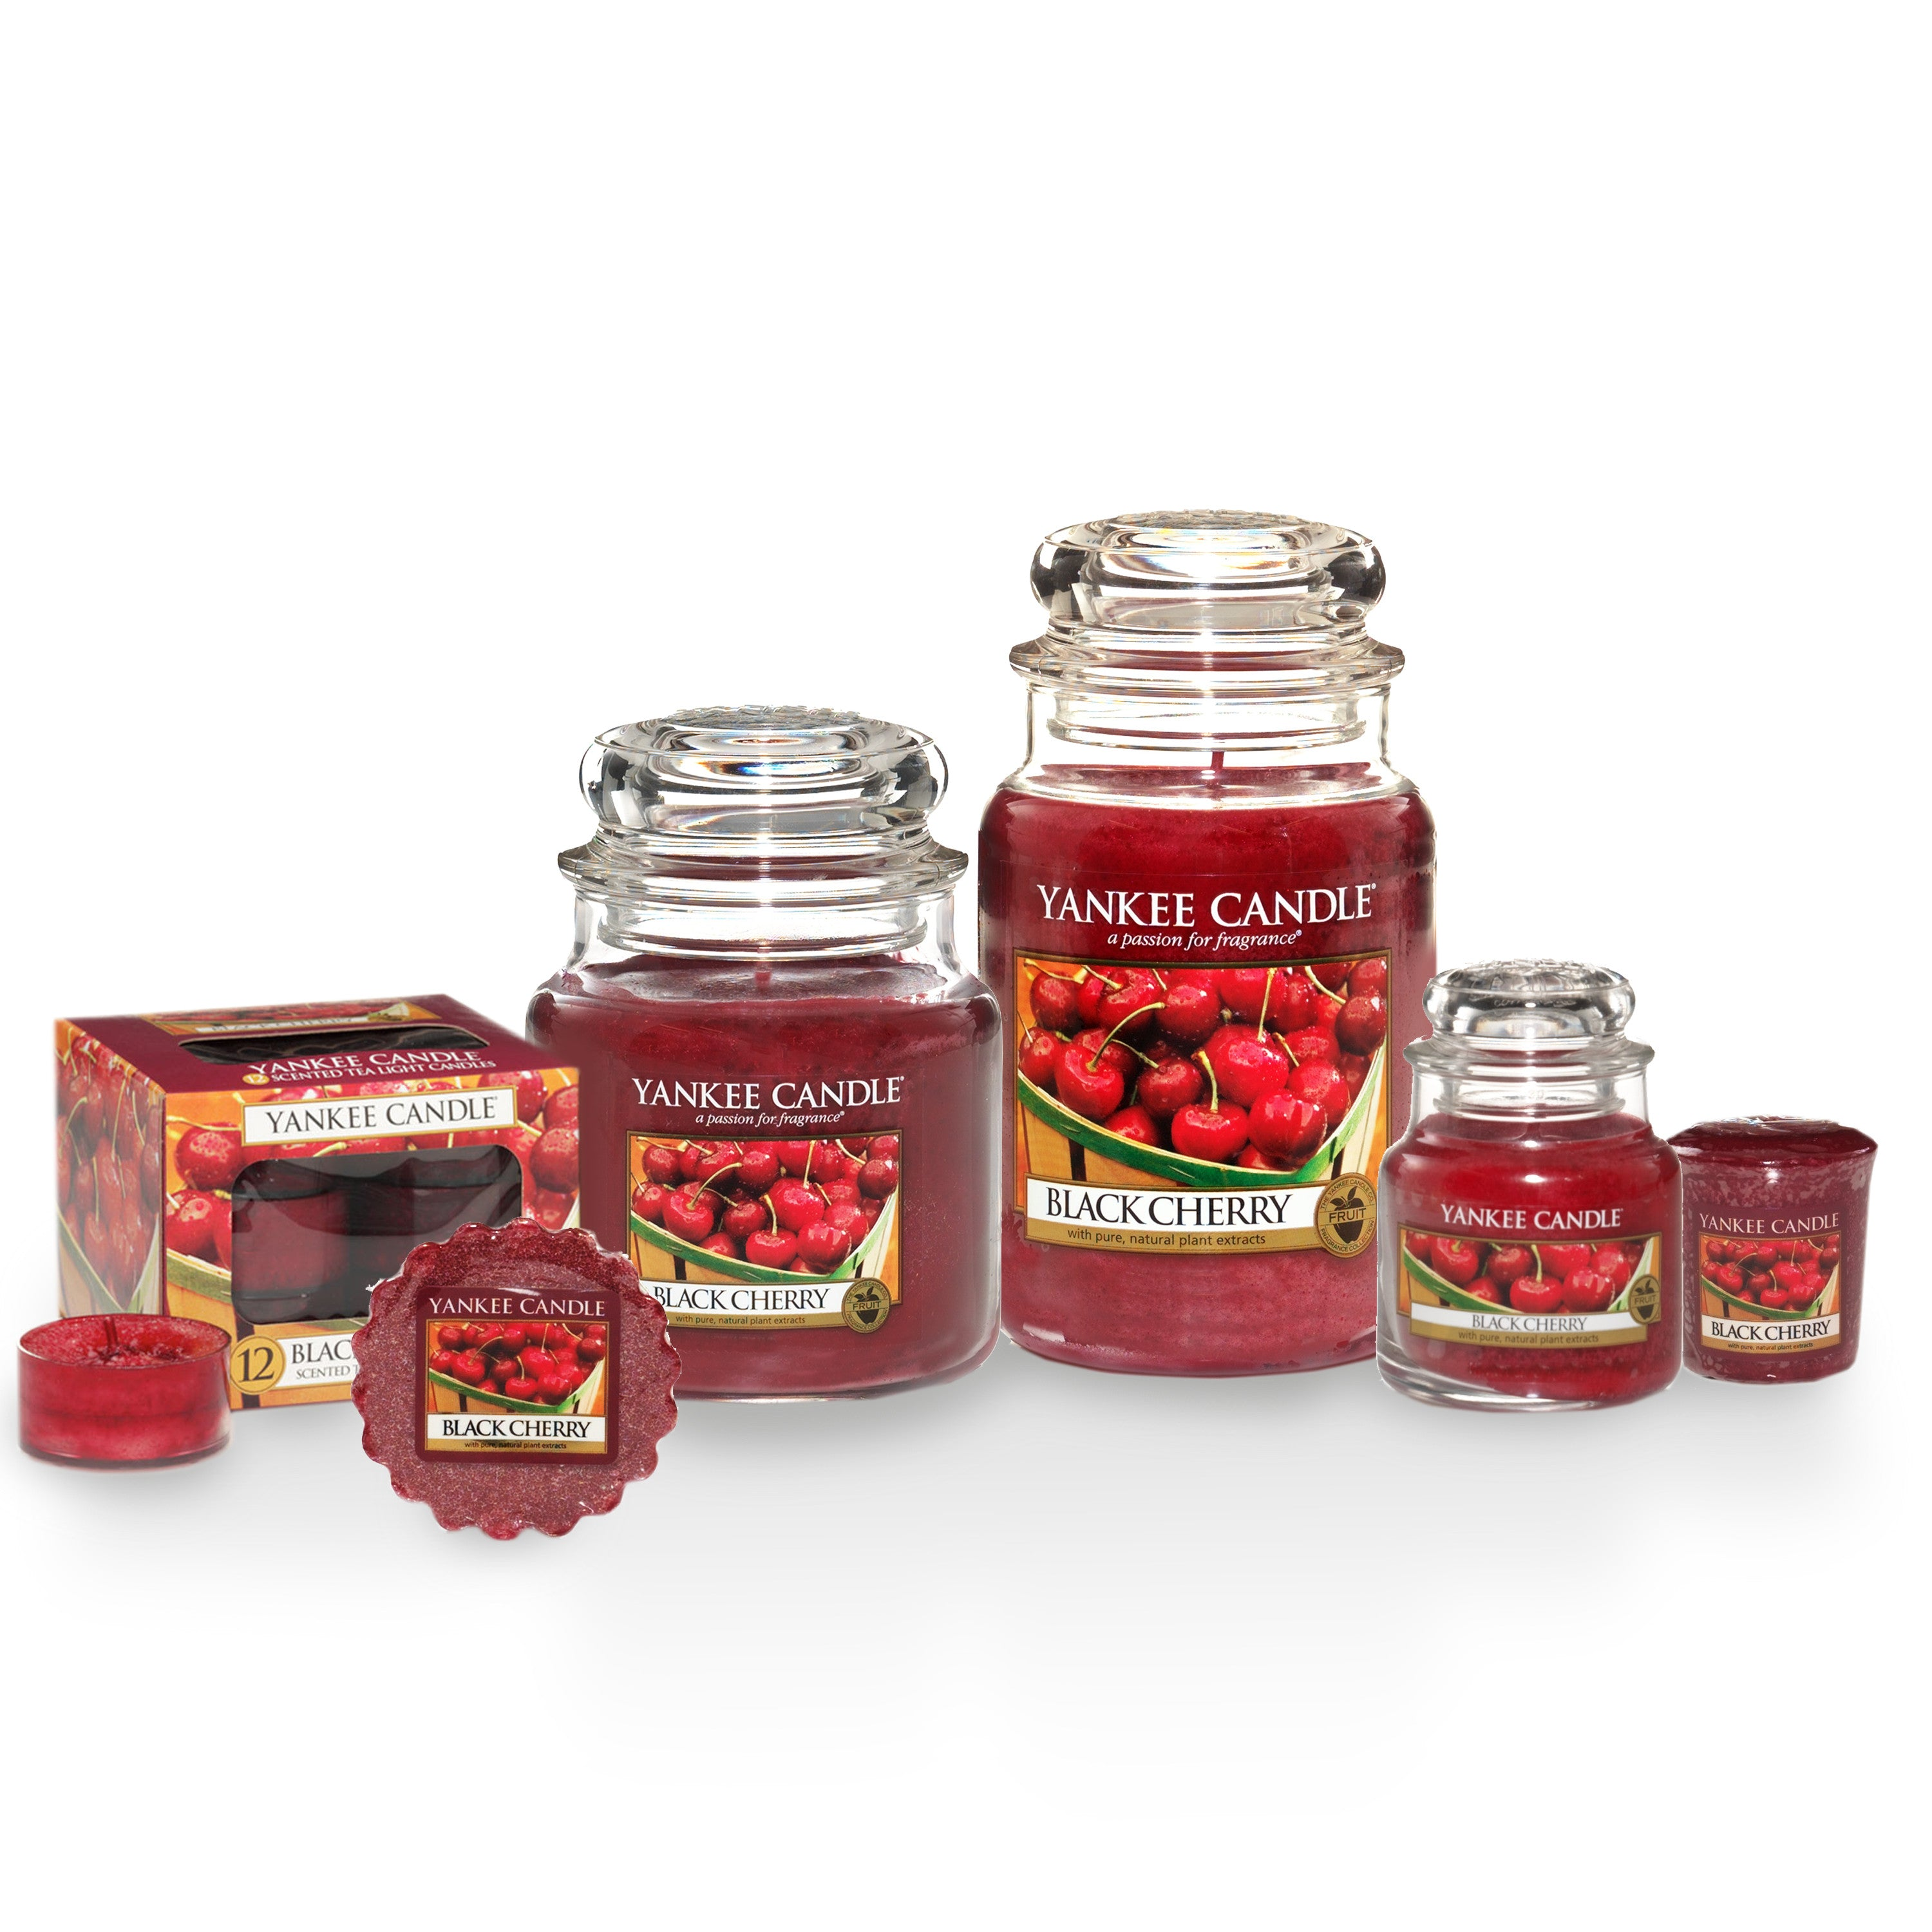 BLACK CHERRY -Yankee Candle- Giara Piccola